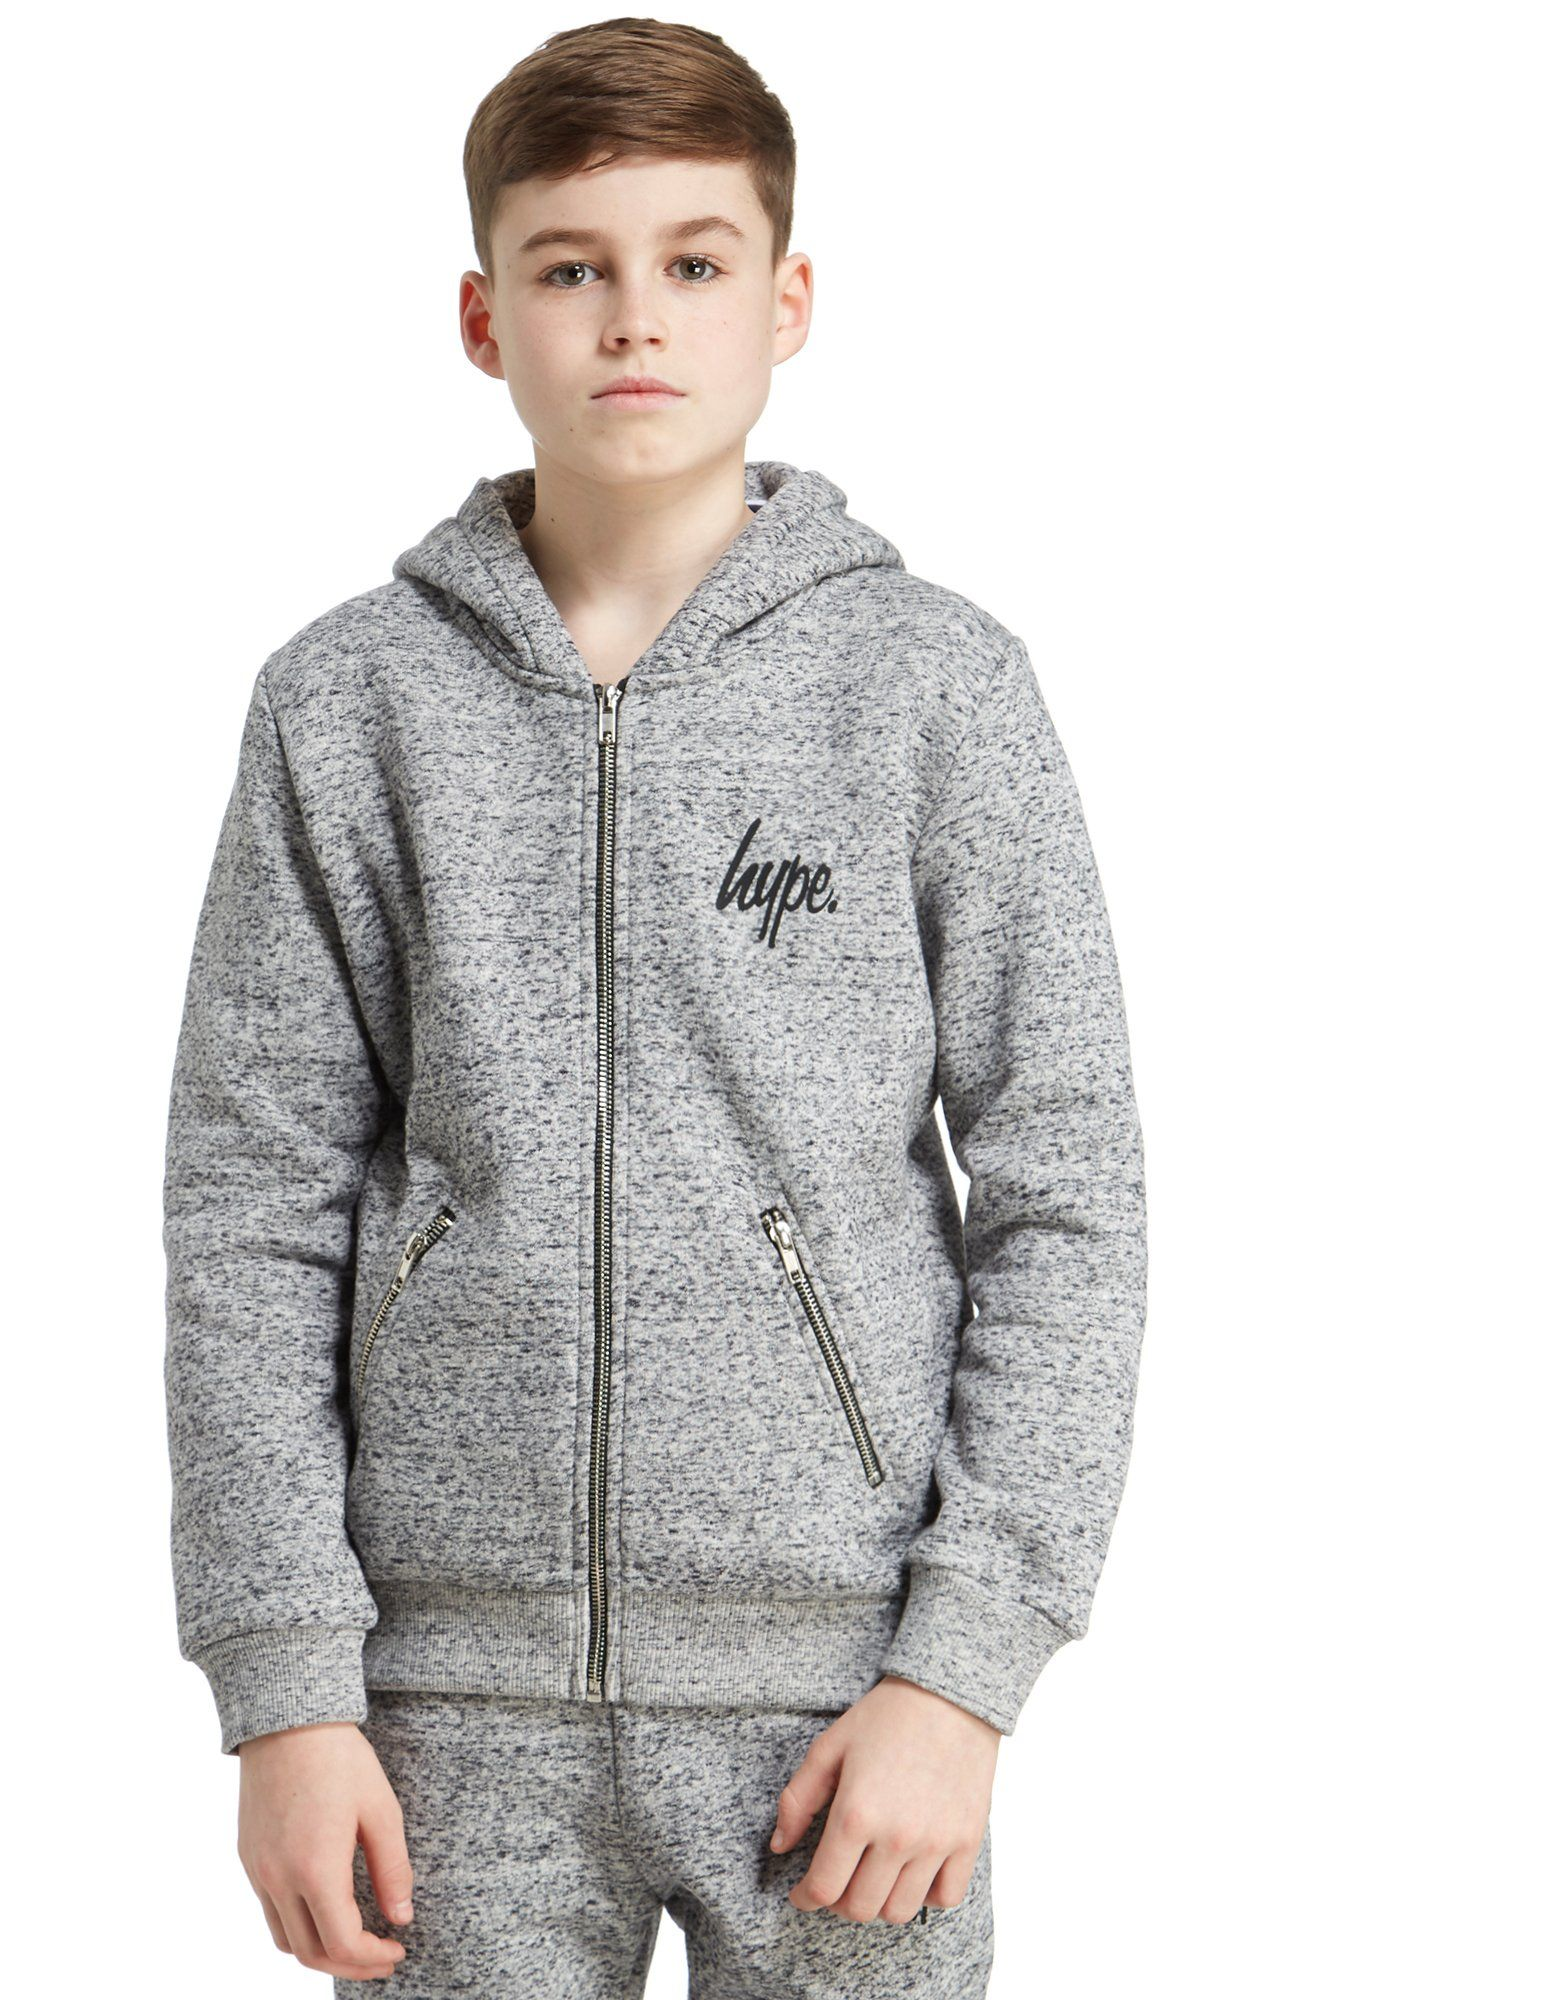 Kids Hype Clothing | JD Sports